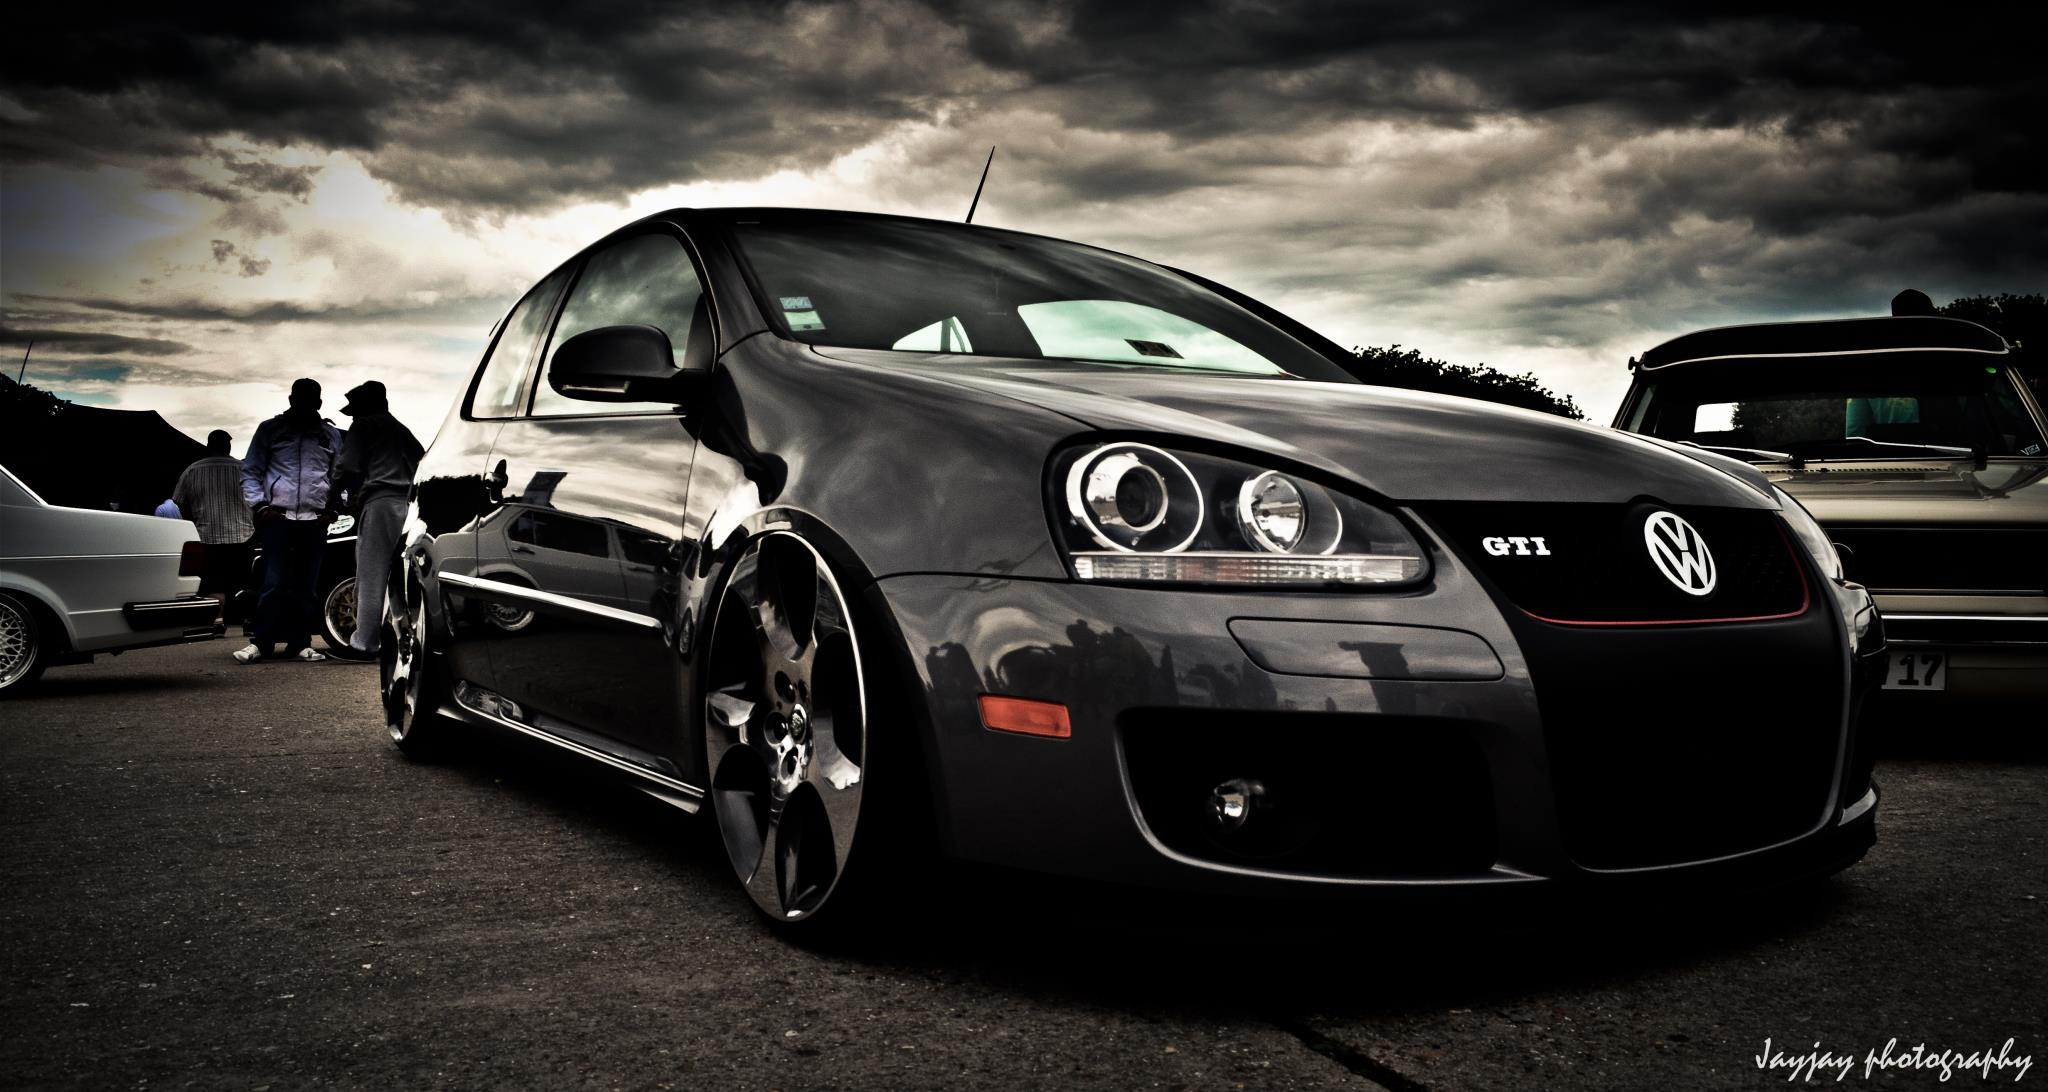 Download Golf 5 Gti Wallpaper Gallery